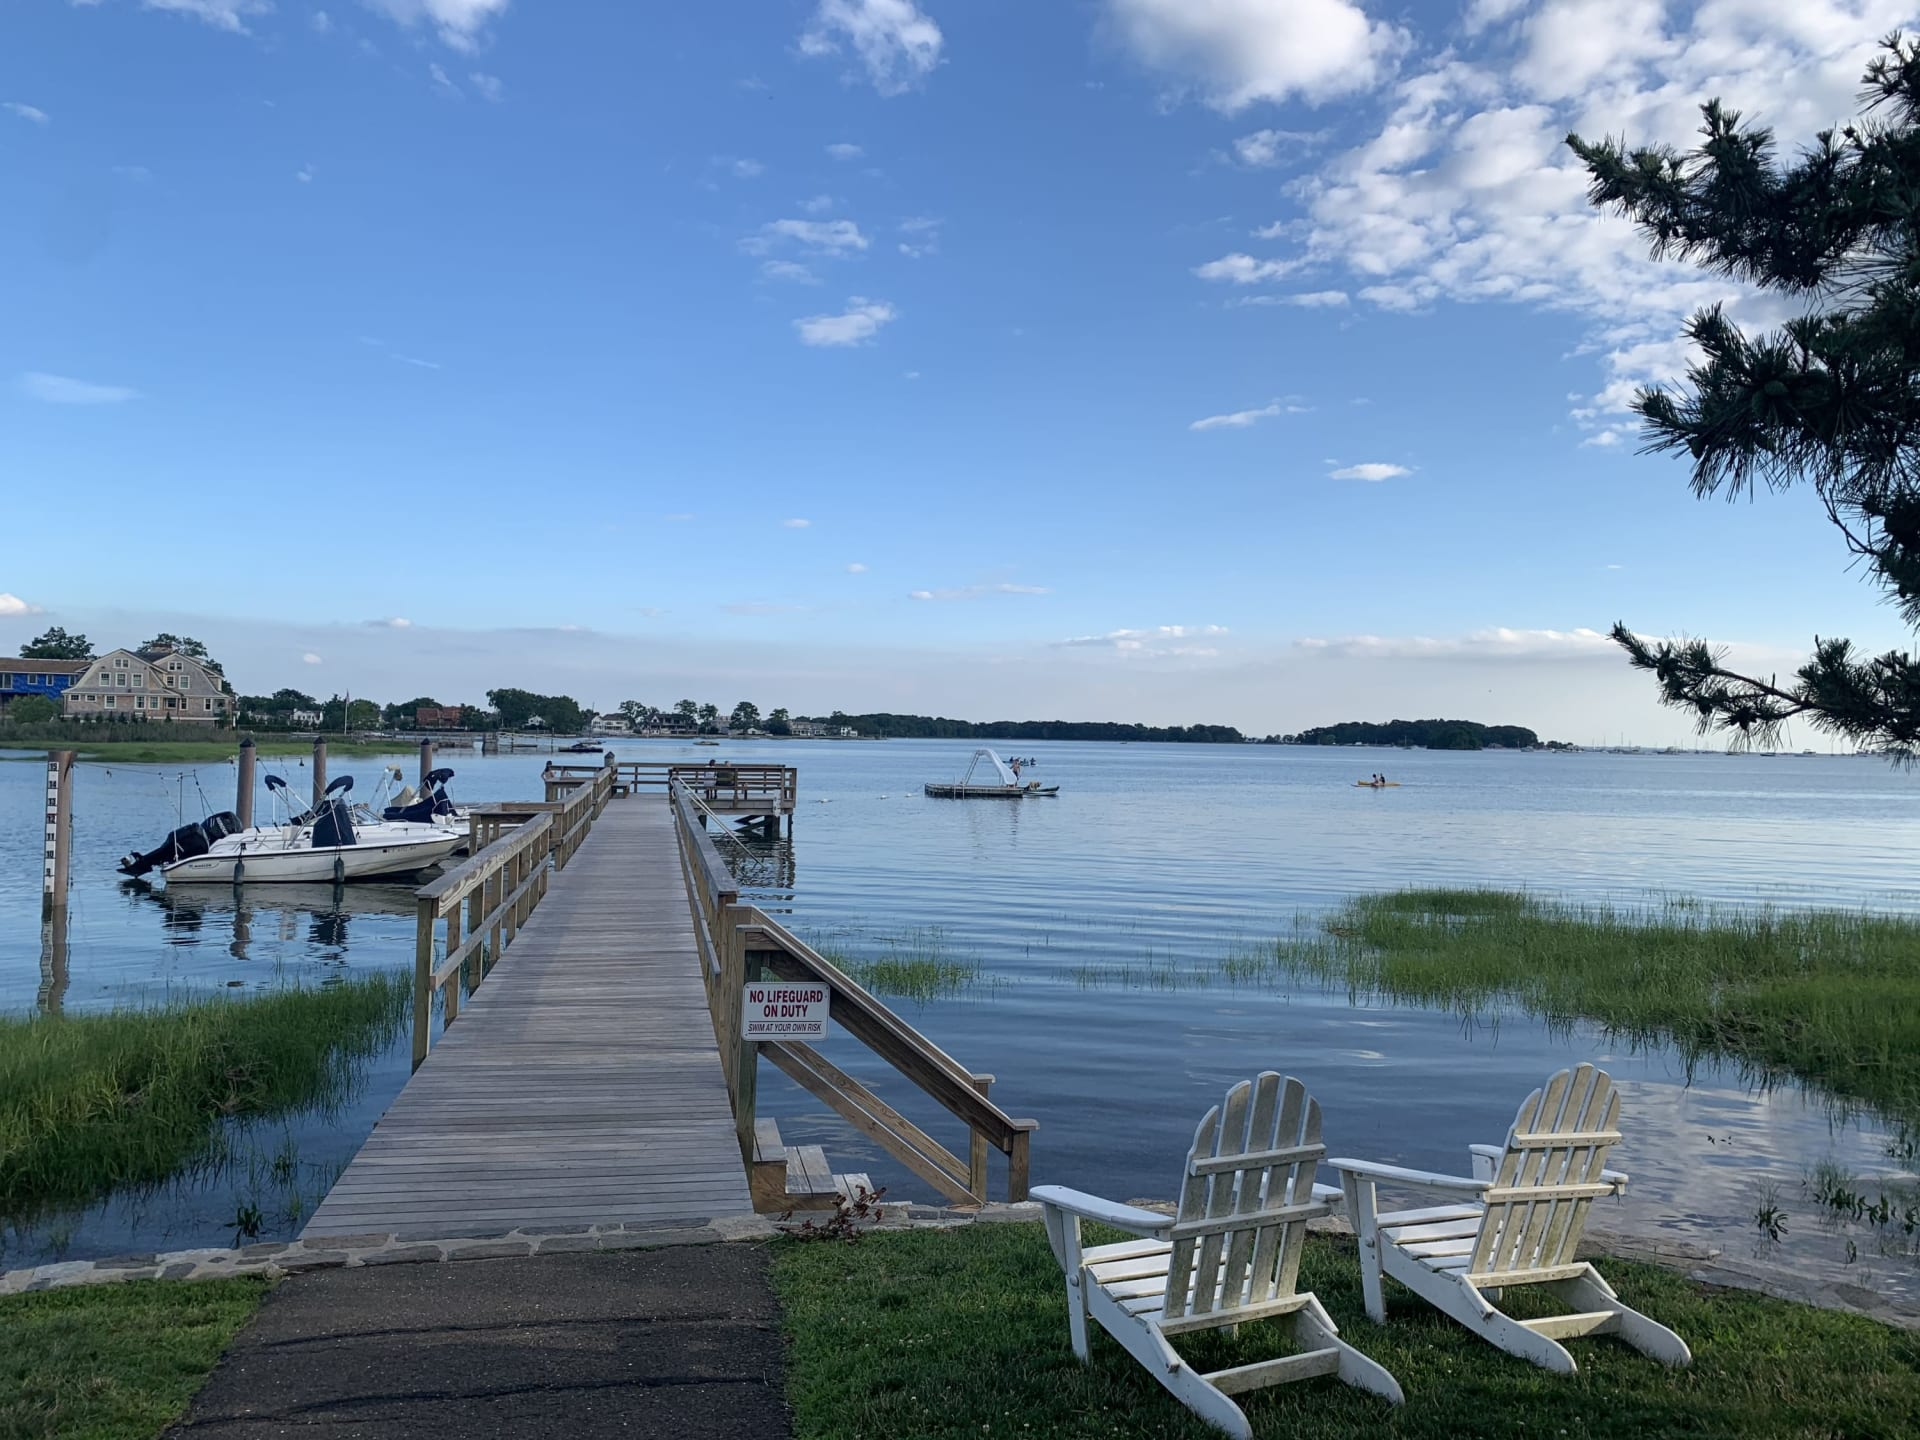 Gold Coast Waterfront Series Part 2: Best Greenwich Private Association Waterfront Homes with Members-Only Docks and Beaches